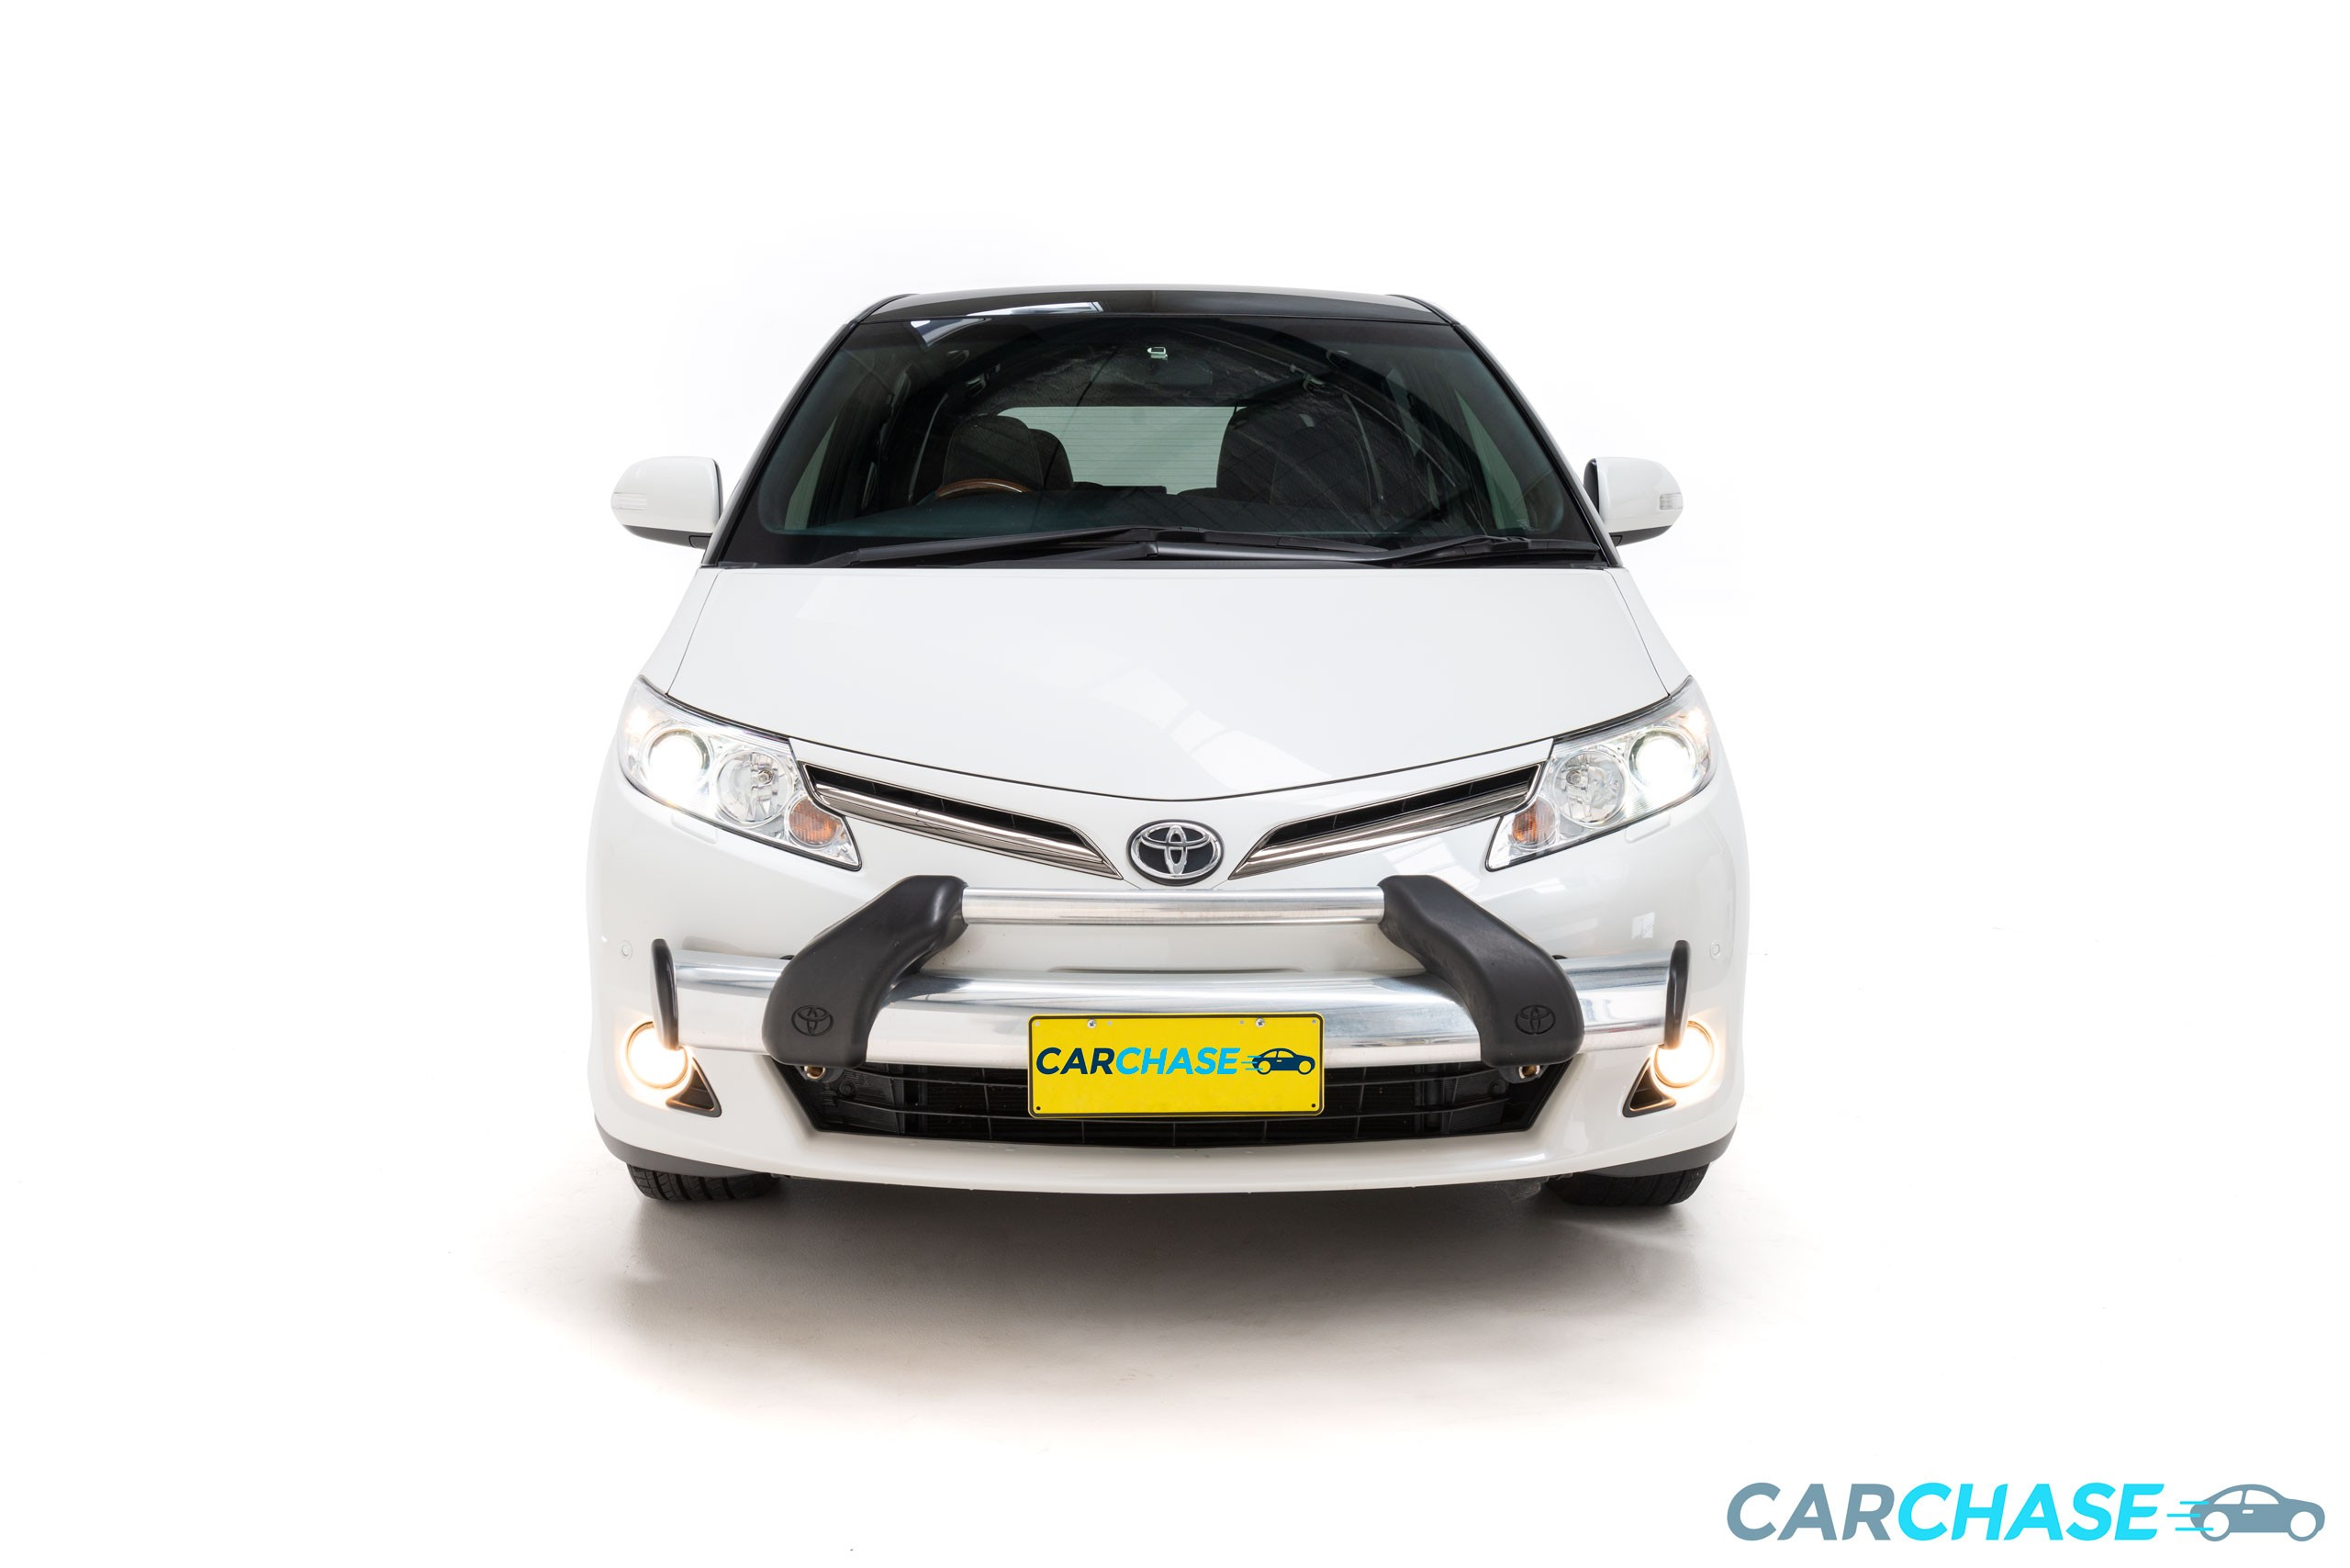 Image of front profile of 2017 Toyota Tarago Ultima